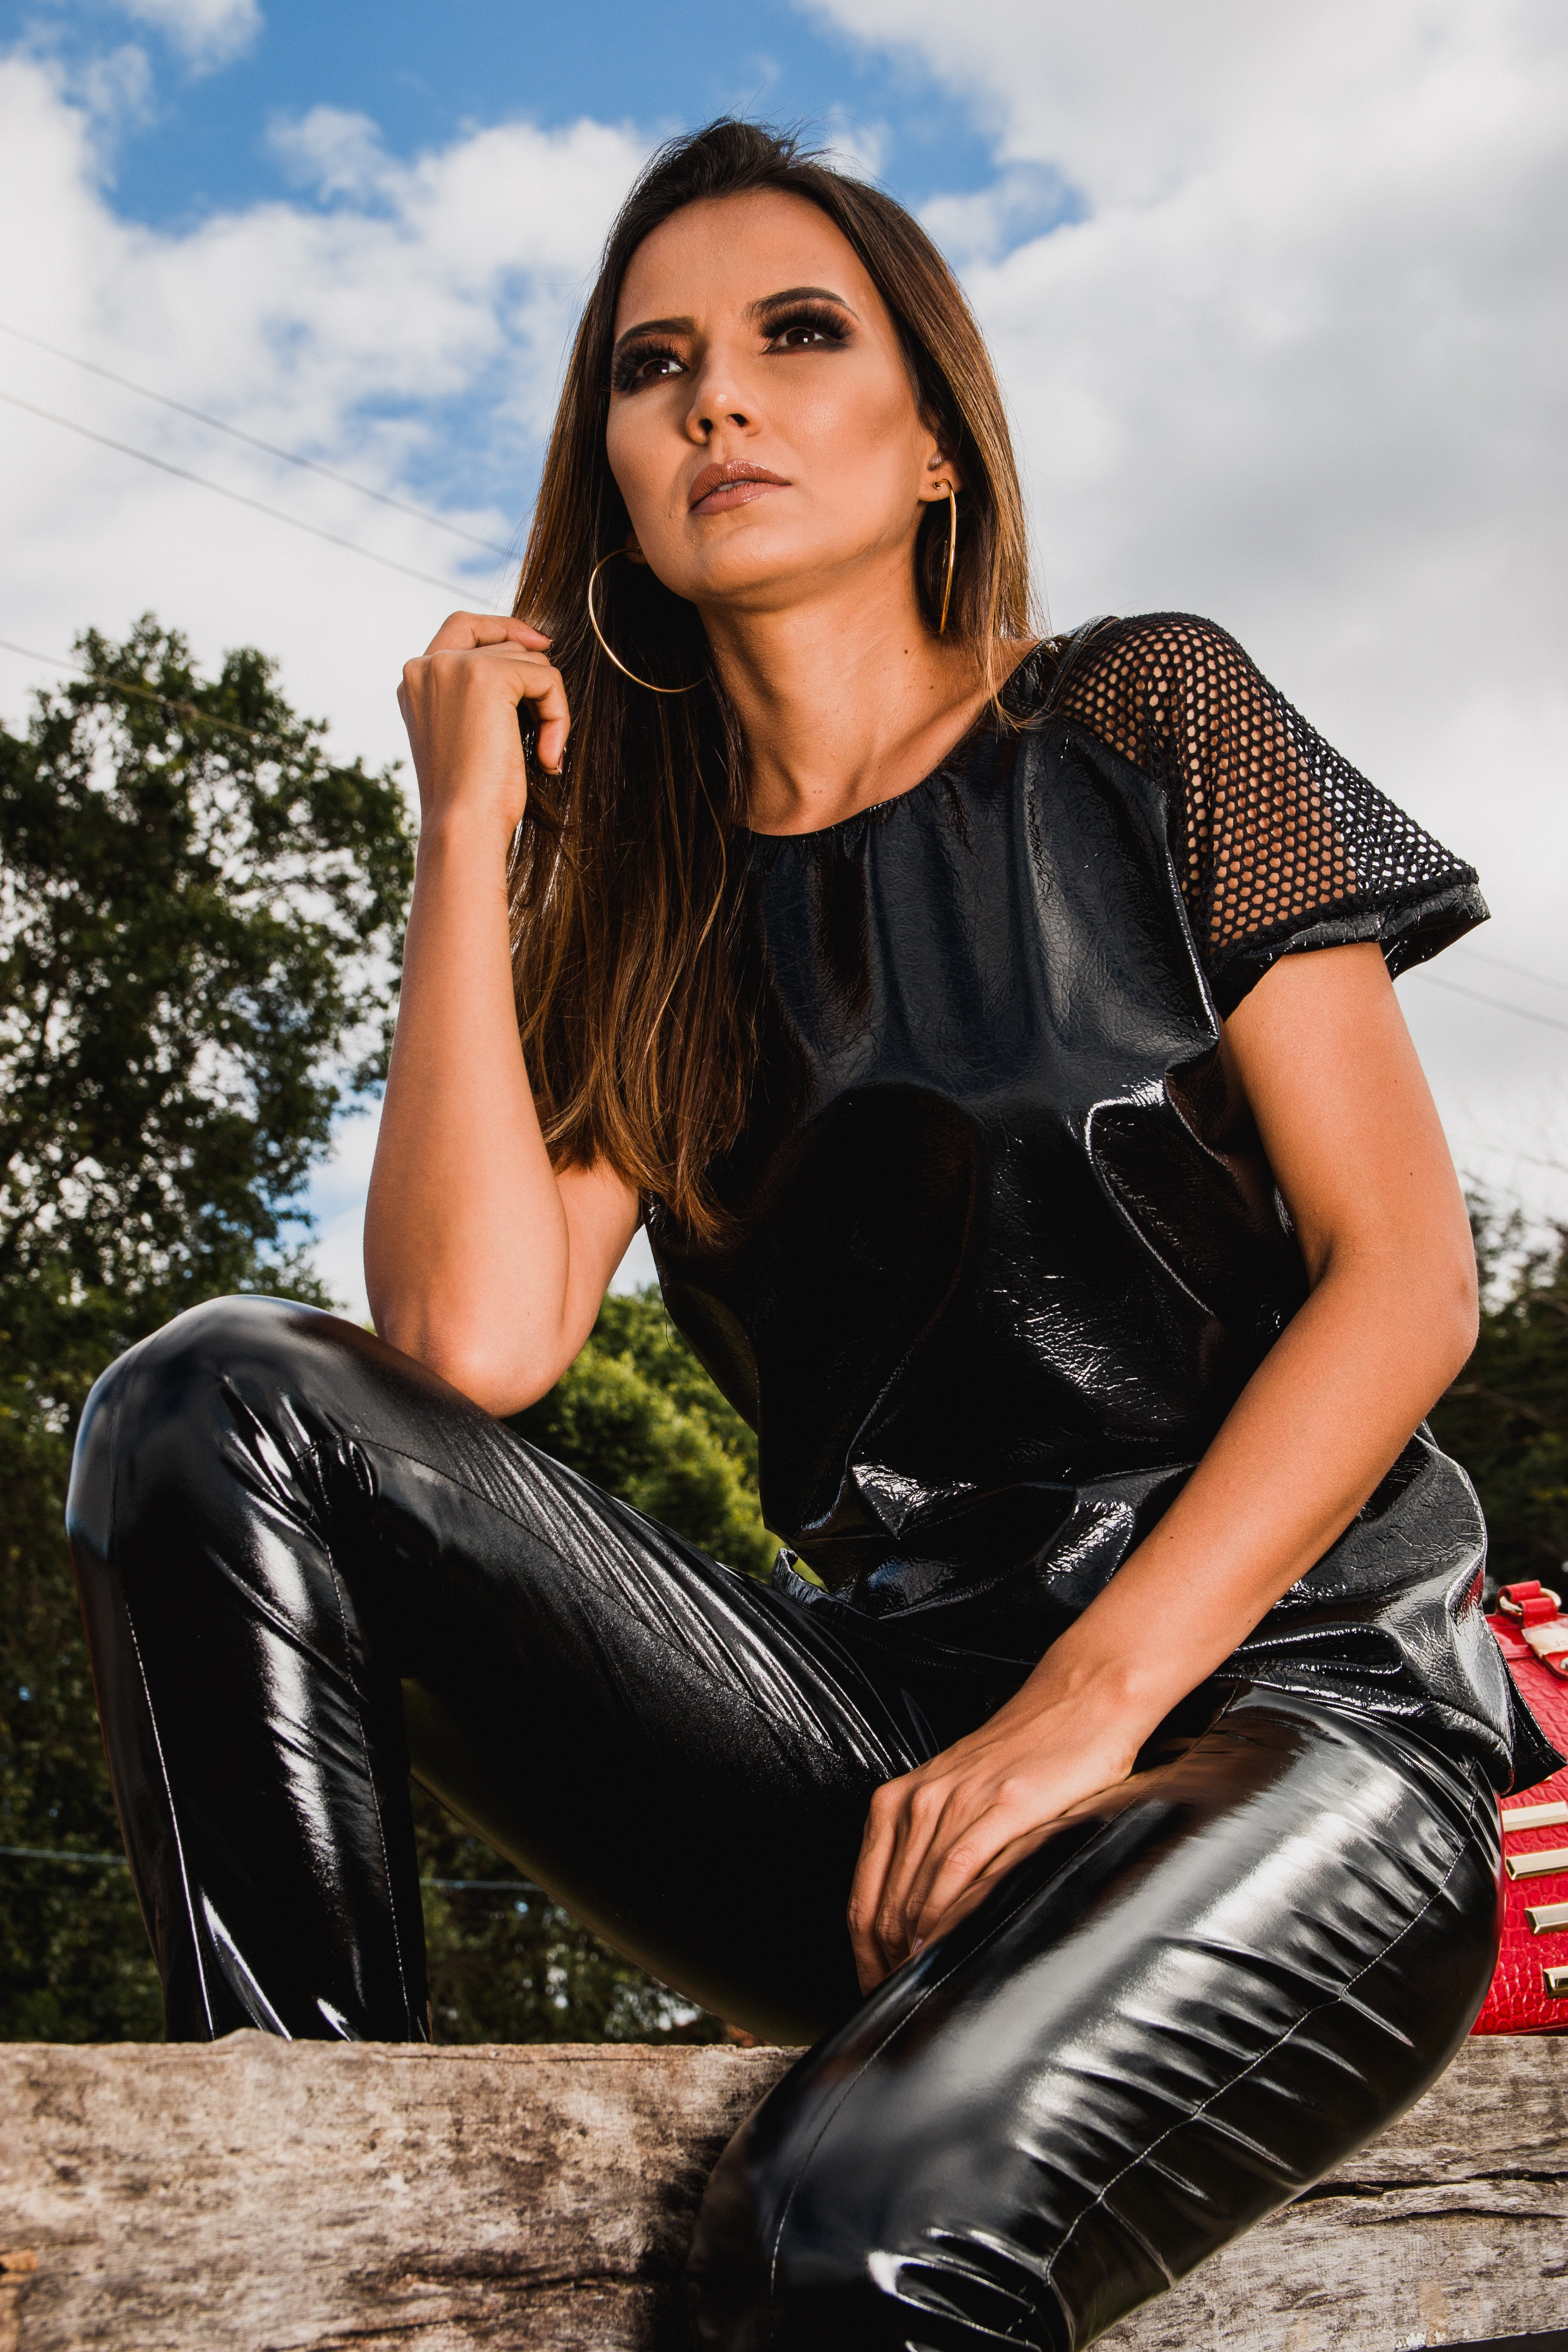 Woman in Black Leather Pants Sitting on Log · Free Stock Photo